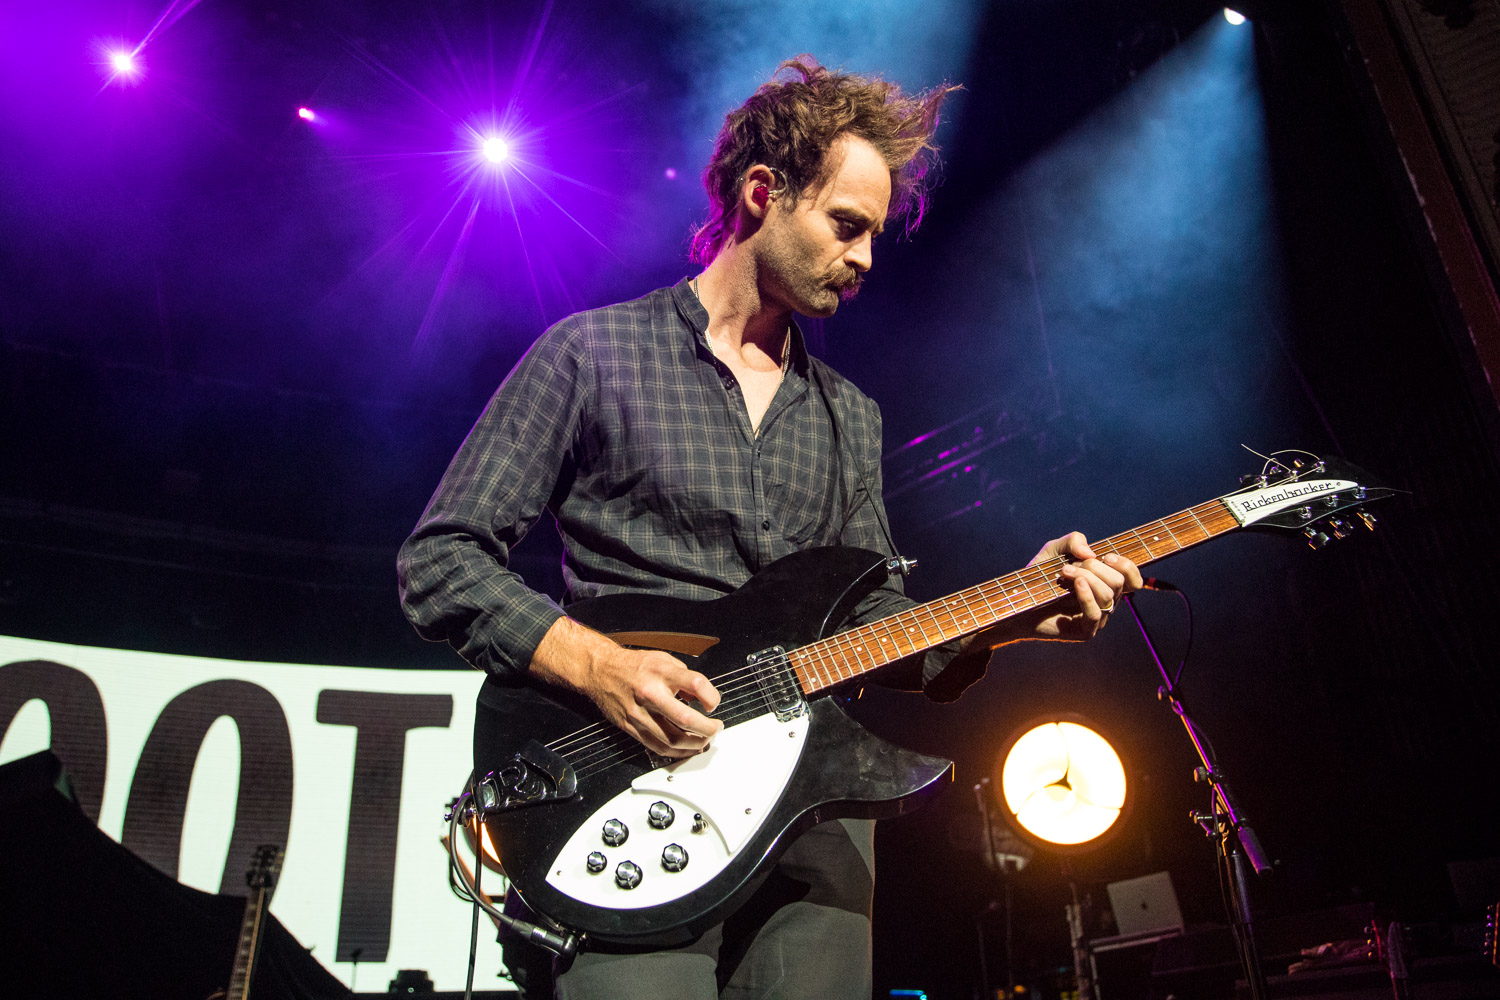 Boaz Roberts, touring guitarist of Switchfoot